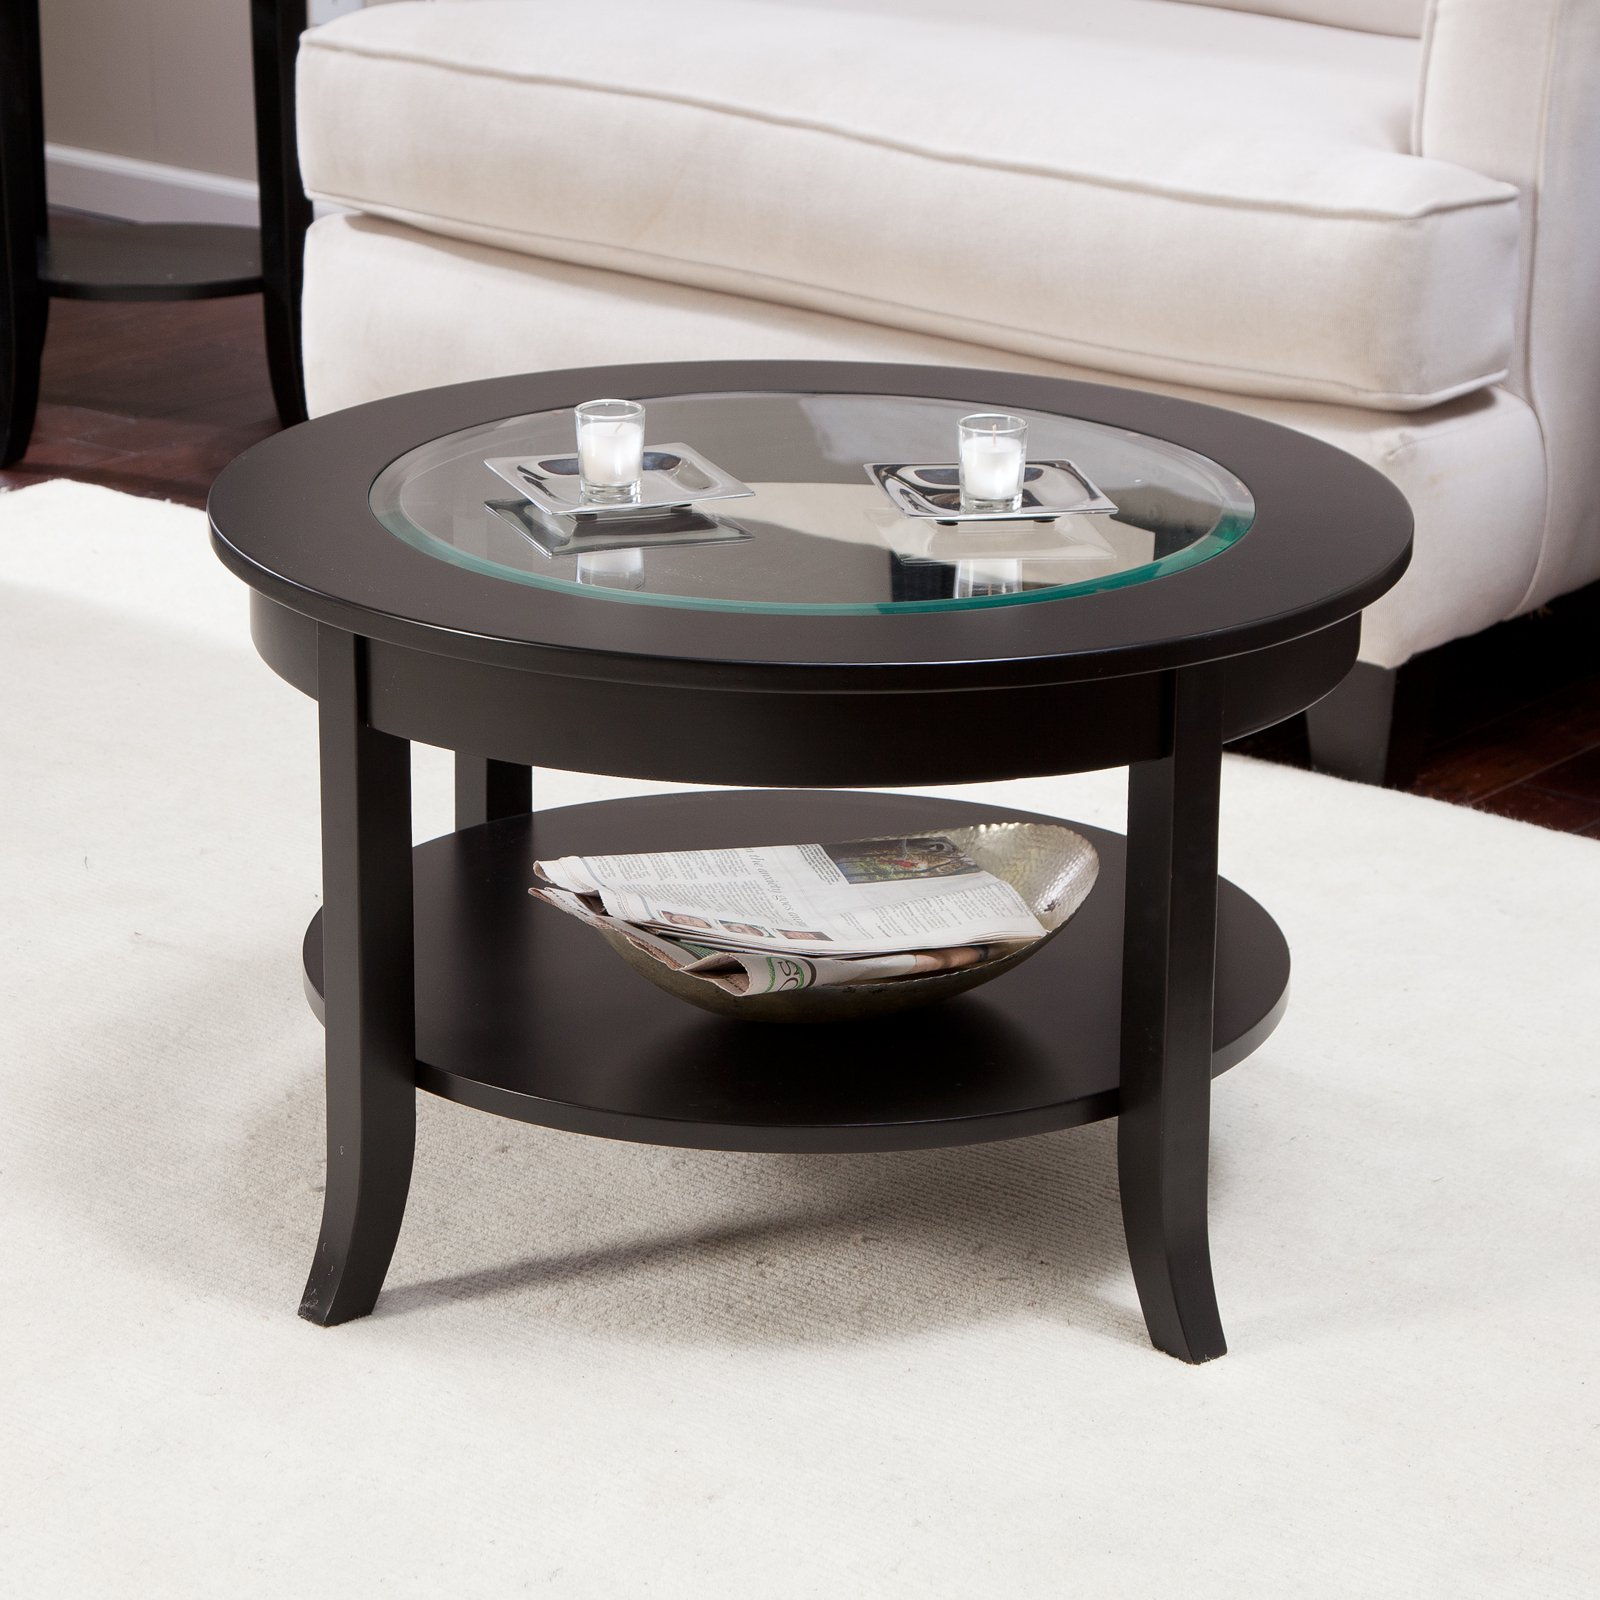 Glass Coffee Tables On Sale Console Tables All Narcissist And Nemesis Family Beautiful Interior Furniture Design (View 2 of 10)